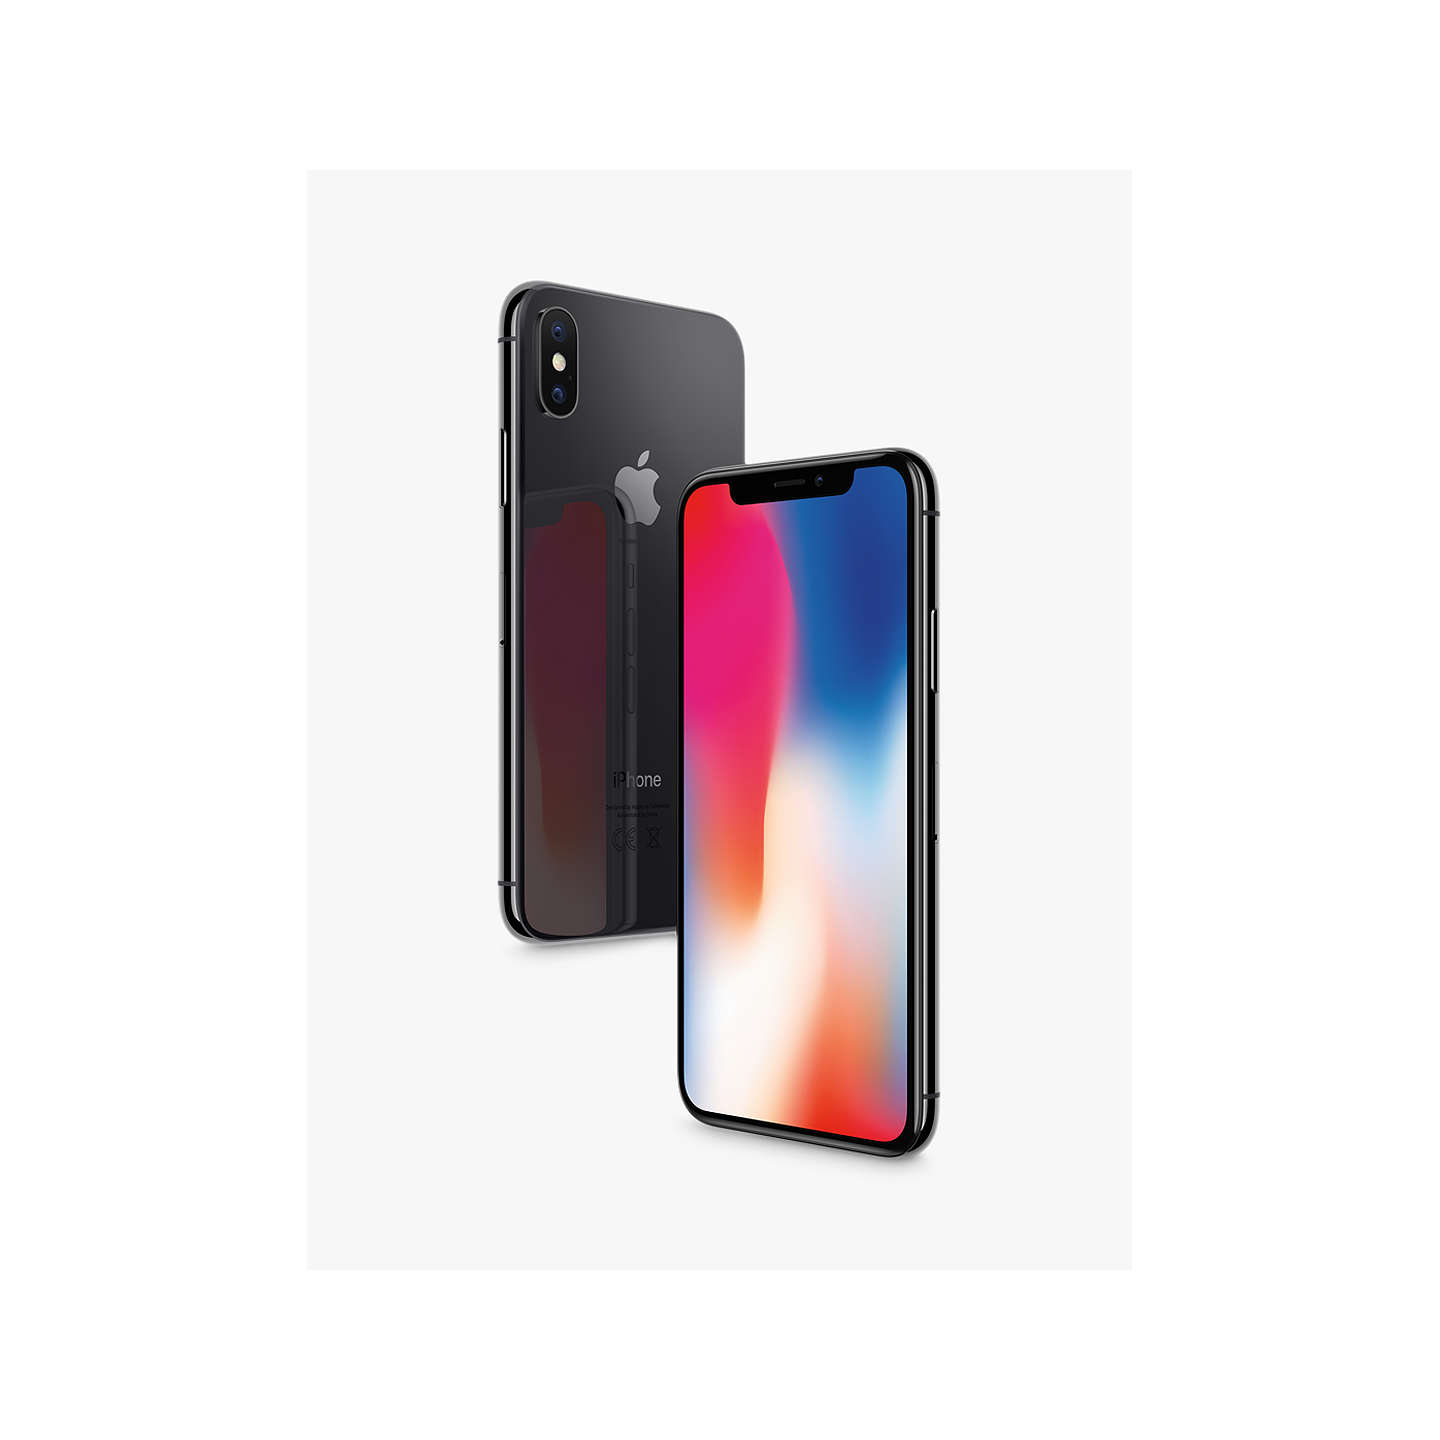 apple iphone x ios 11 5 8 4g lte sim free 64gb at john lewis. Black Bedroom Furniture Sets. Home Design Ideas